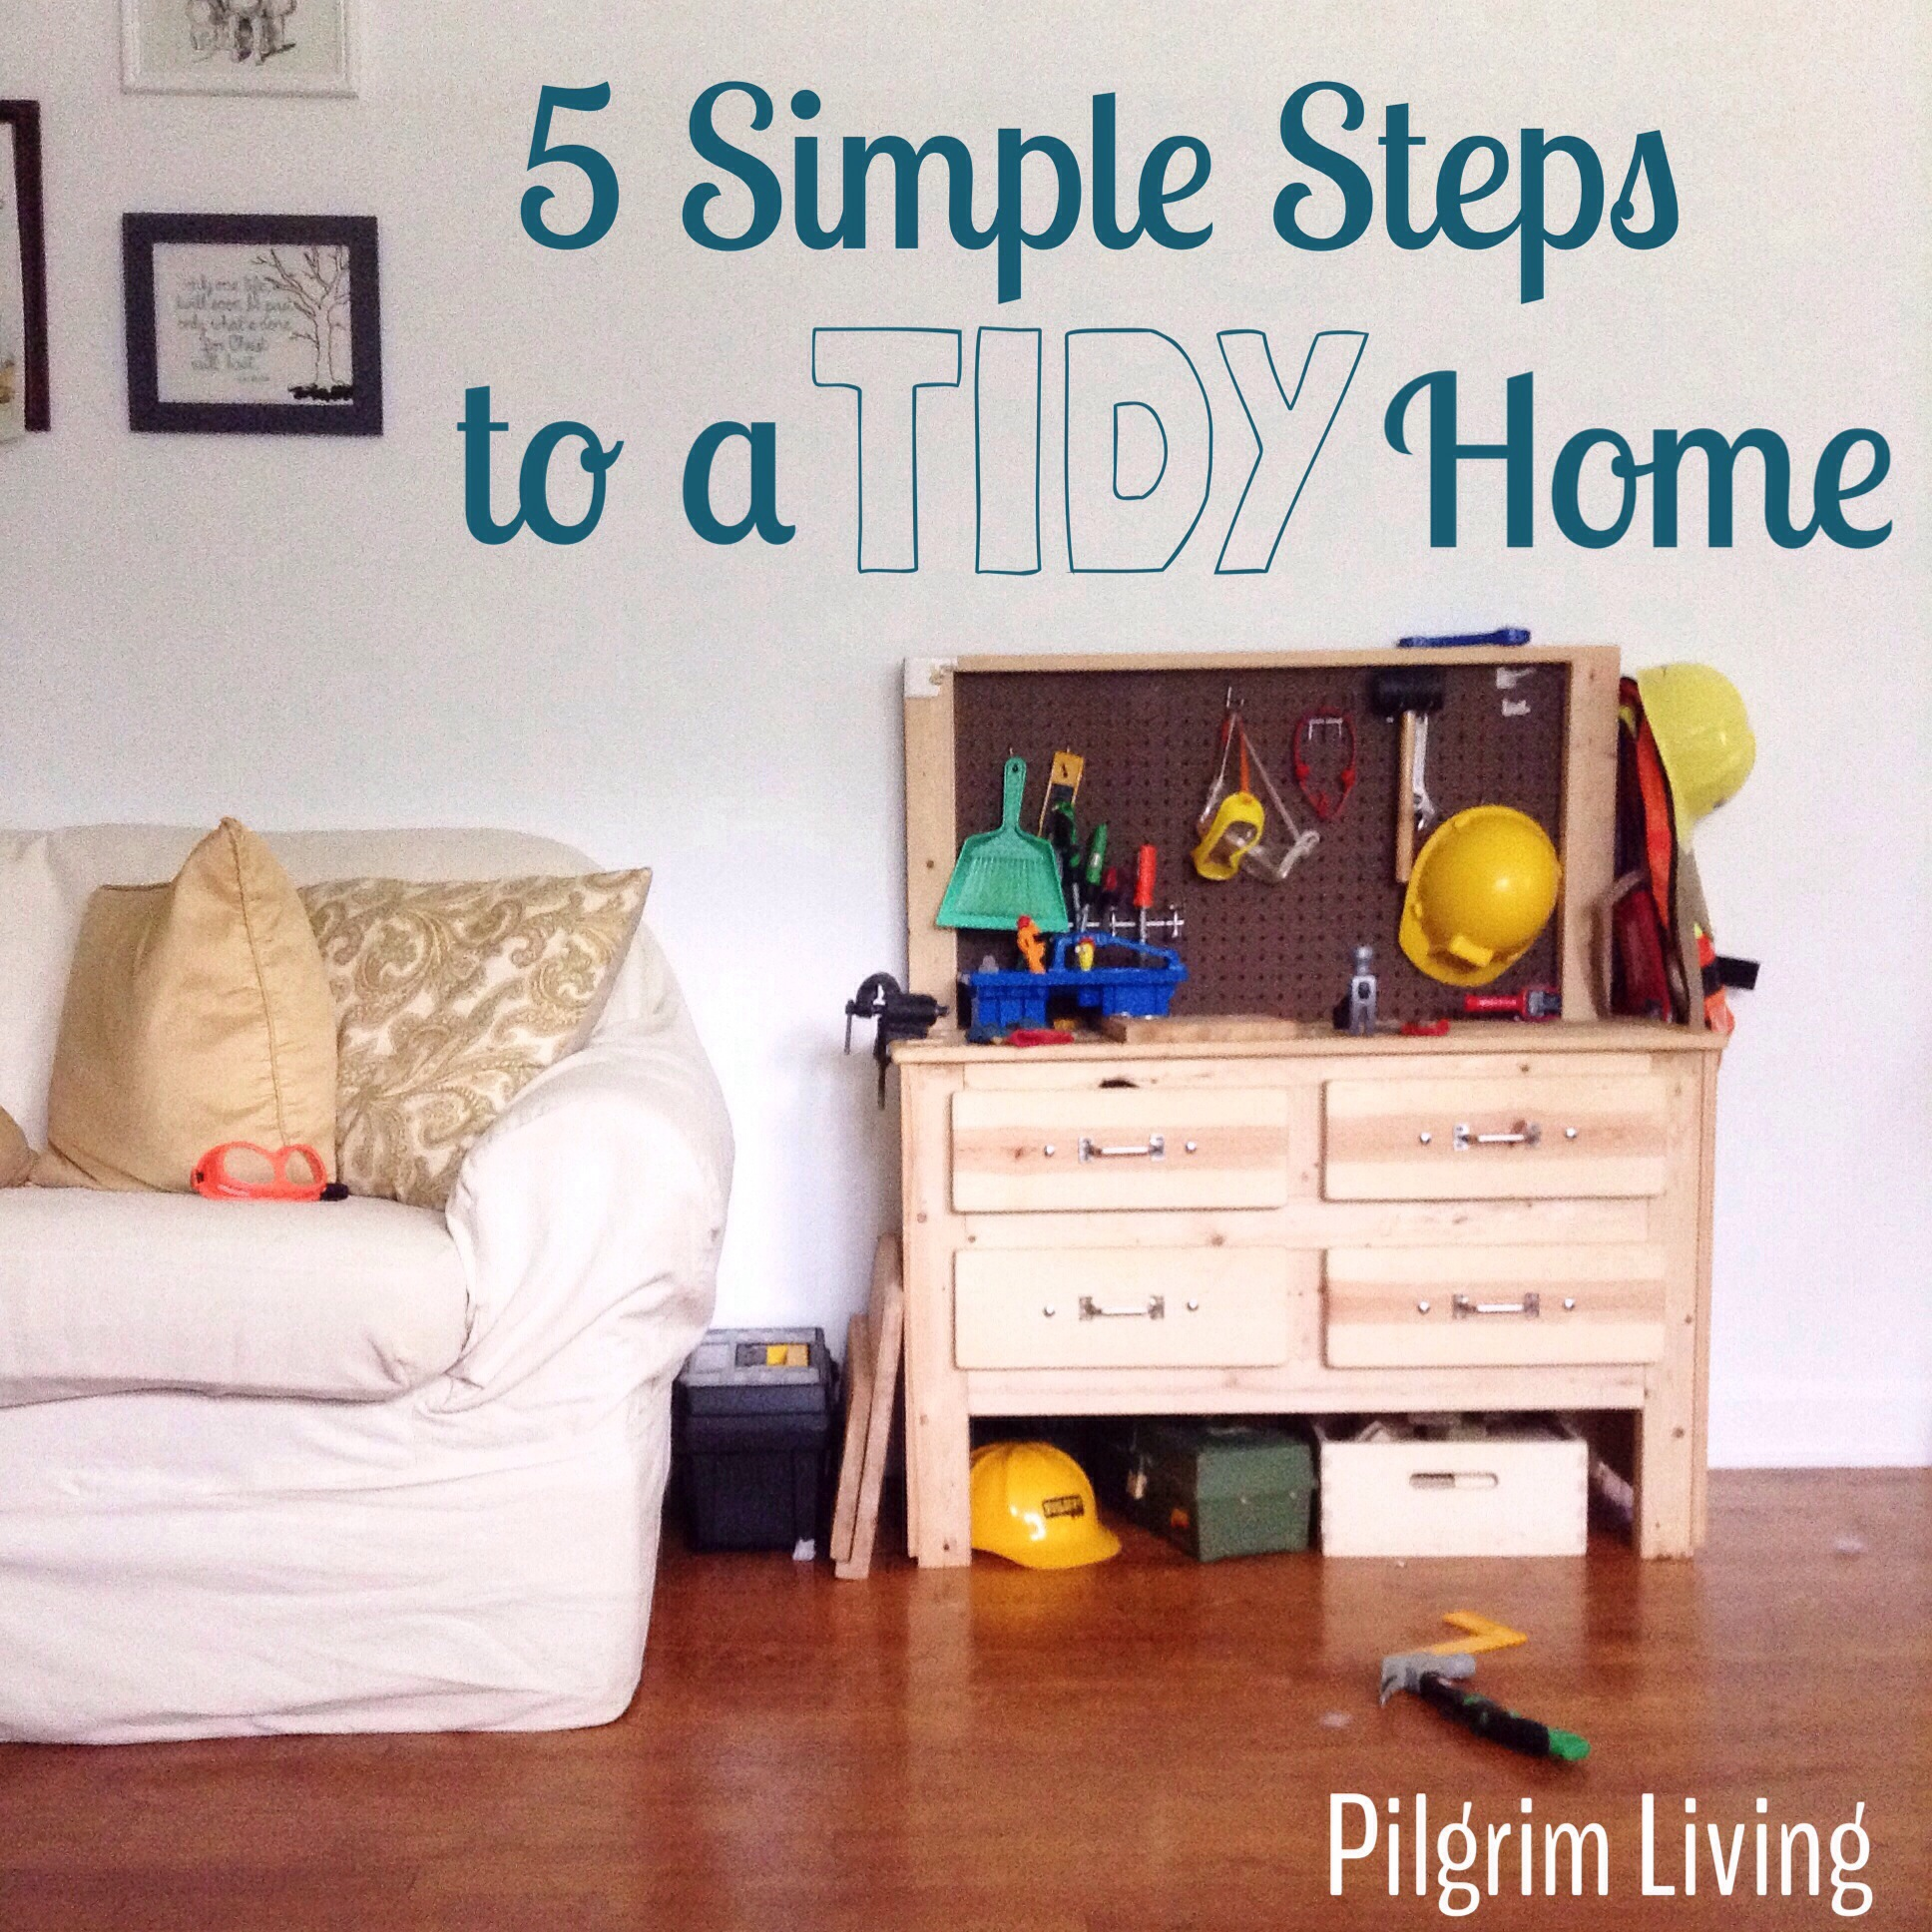 5 simple steps to a tidy home